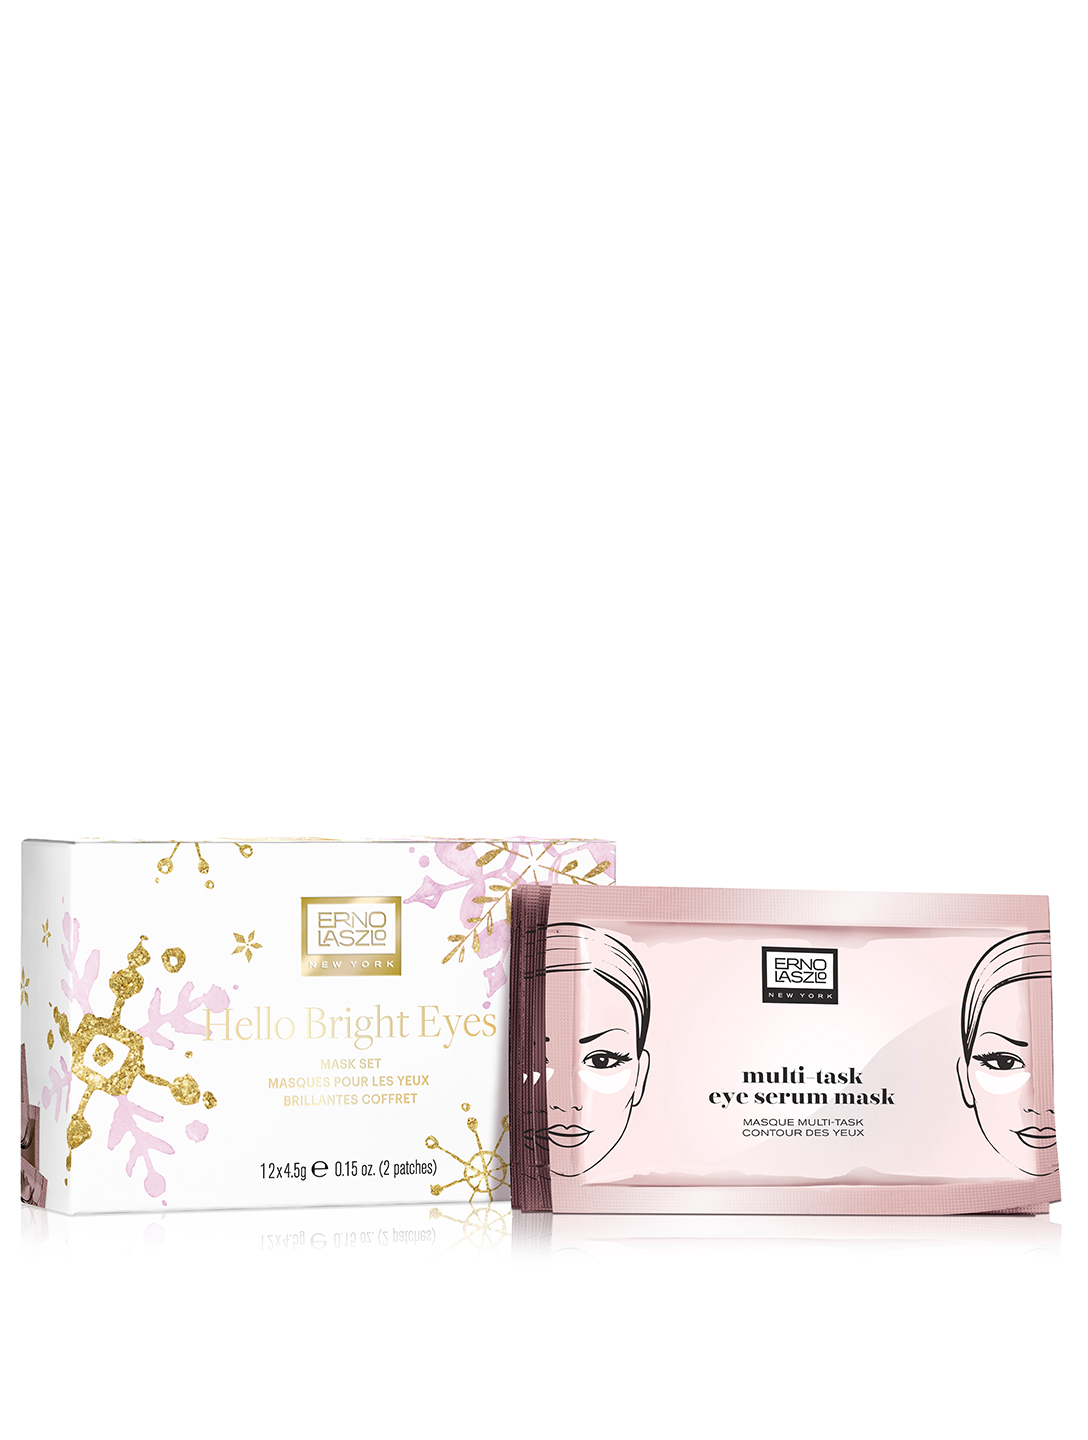 ERNO LASZLO Hello Bright Eyes Mask Set Beauty